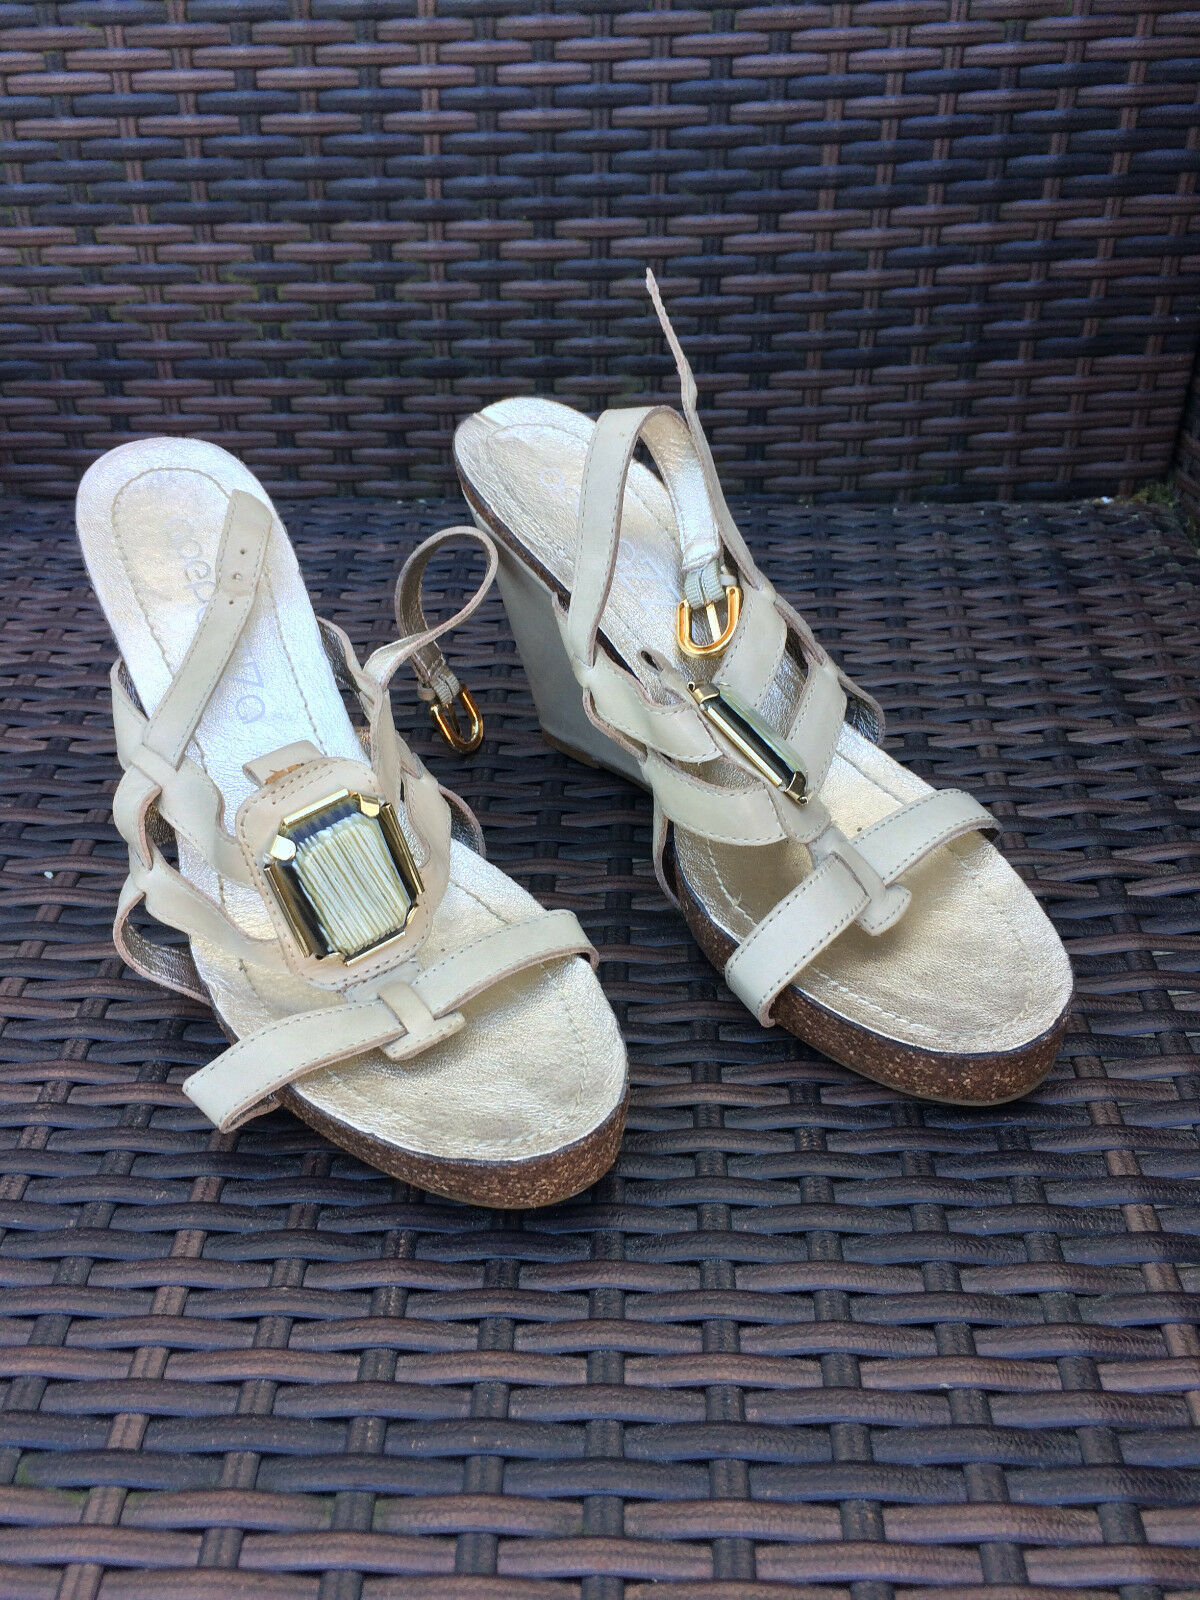 Top  Apepazza Sandalen    Top Damenschuhe ,Gr 41 d76c4e